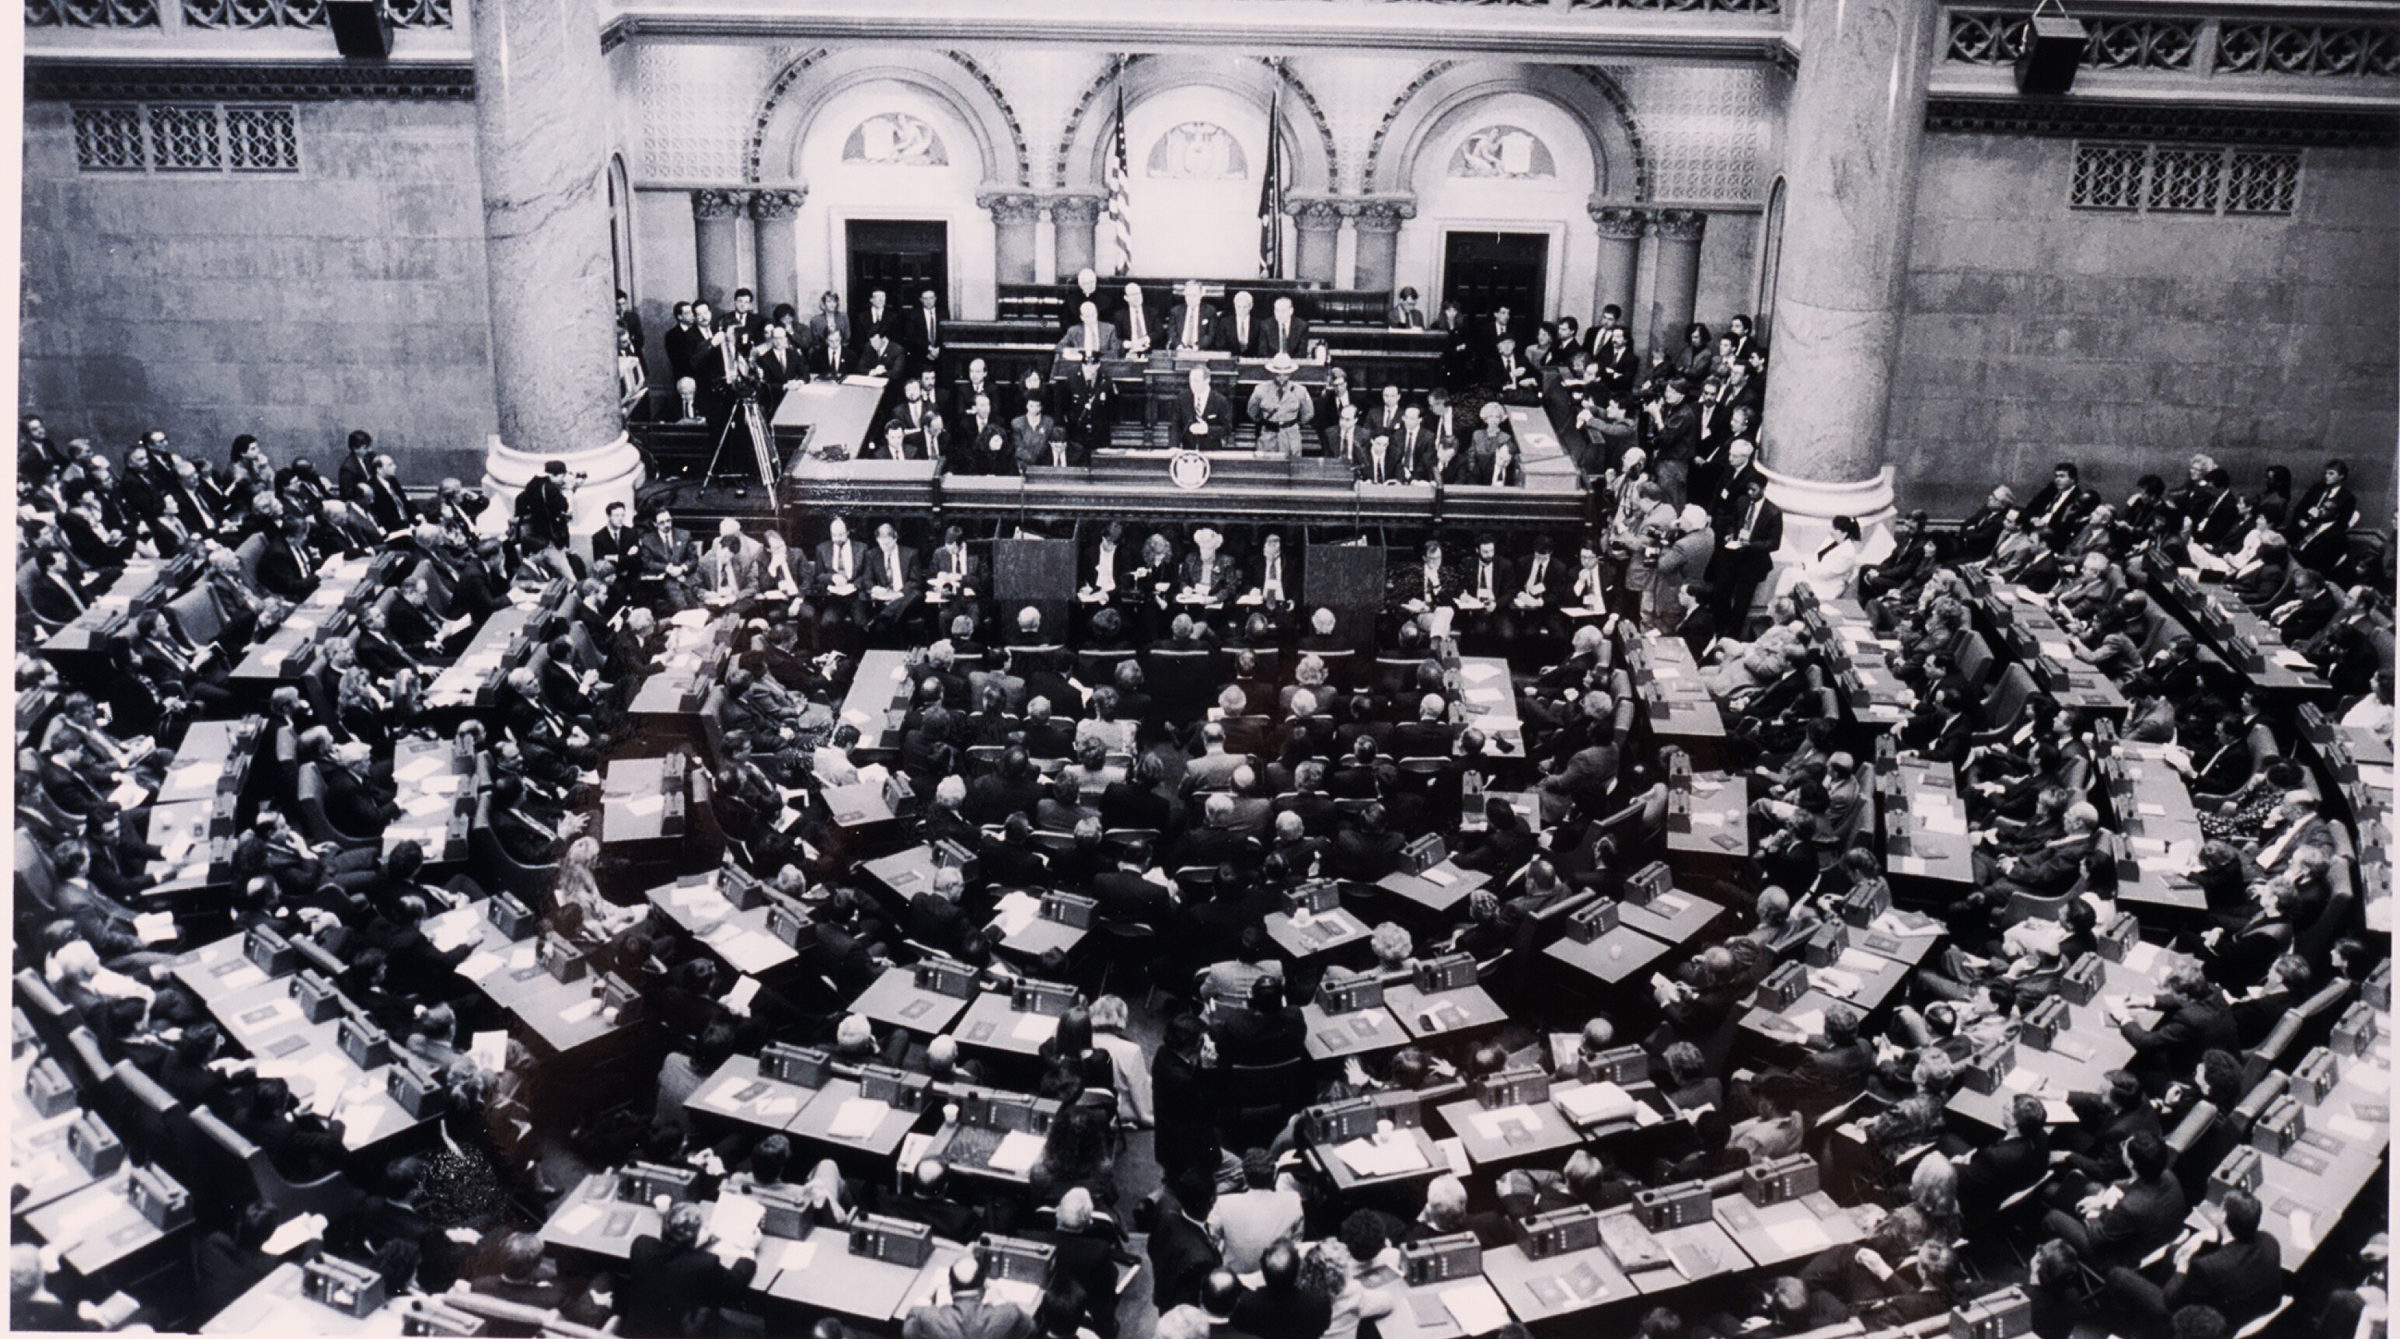 New York State Legislature in session